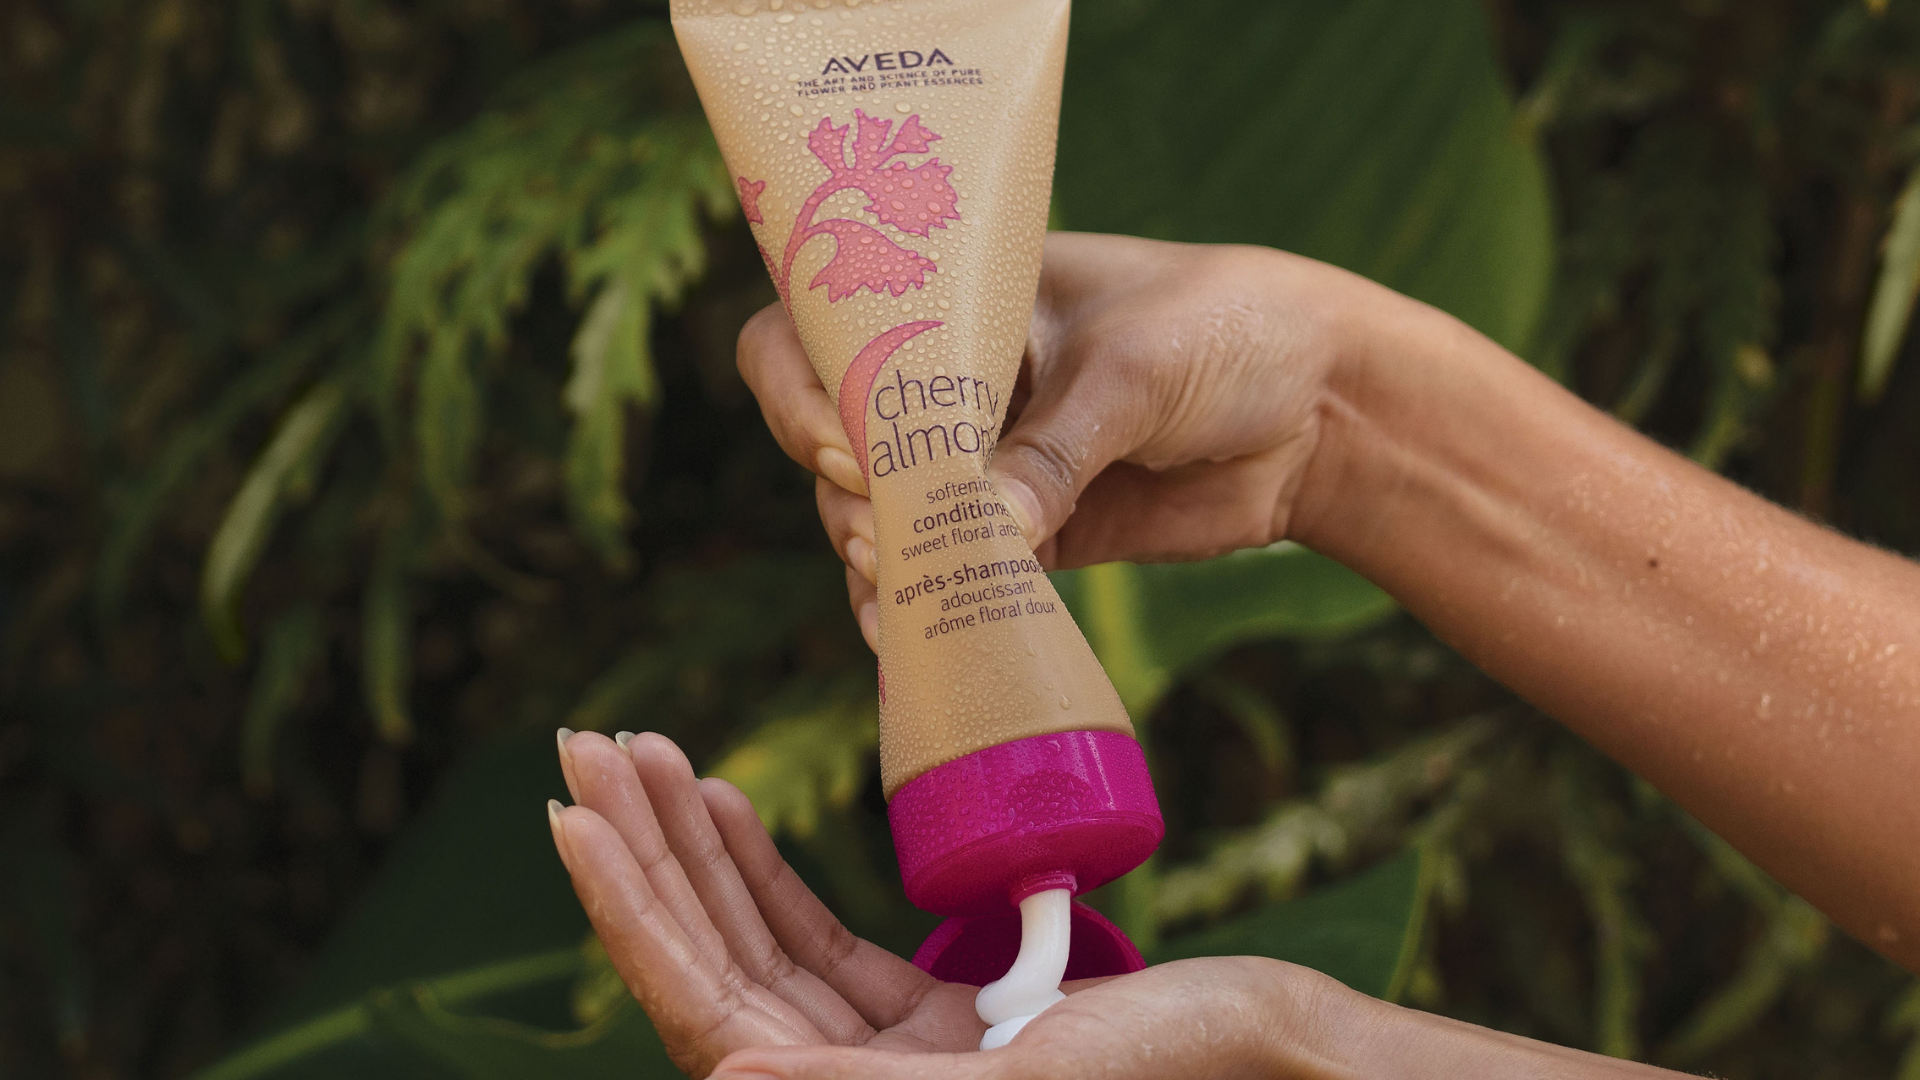 Stop Everything: Aveda's Beloved Cherry Almond Range Is Back